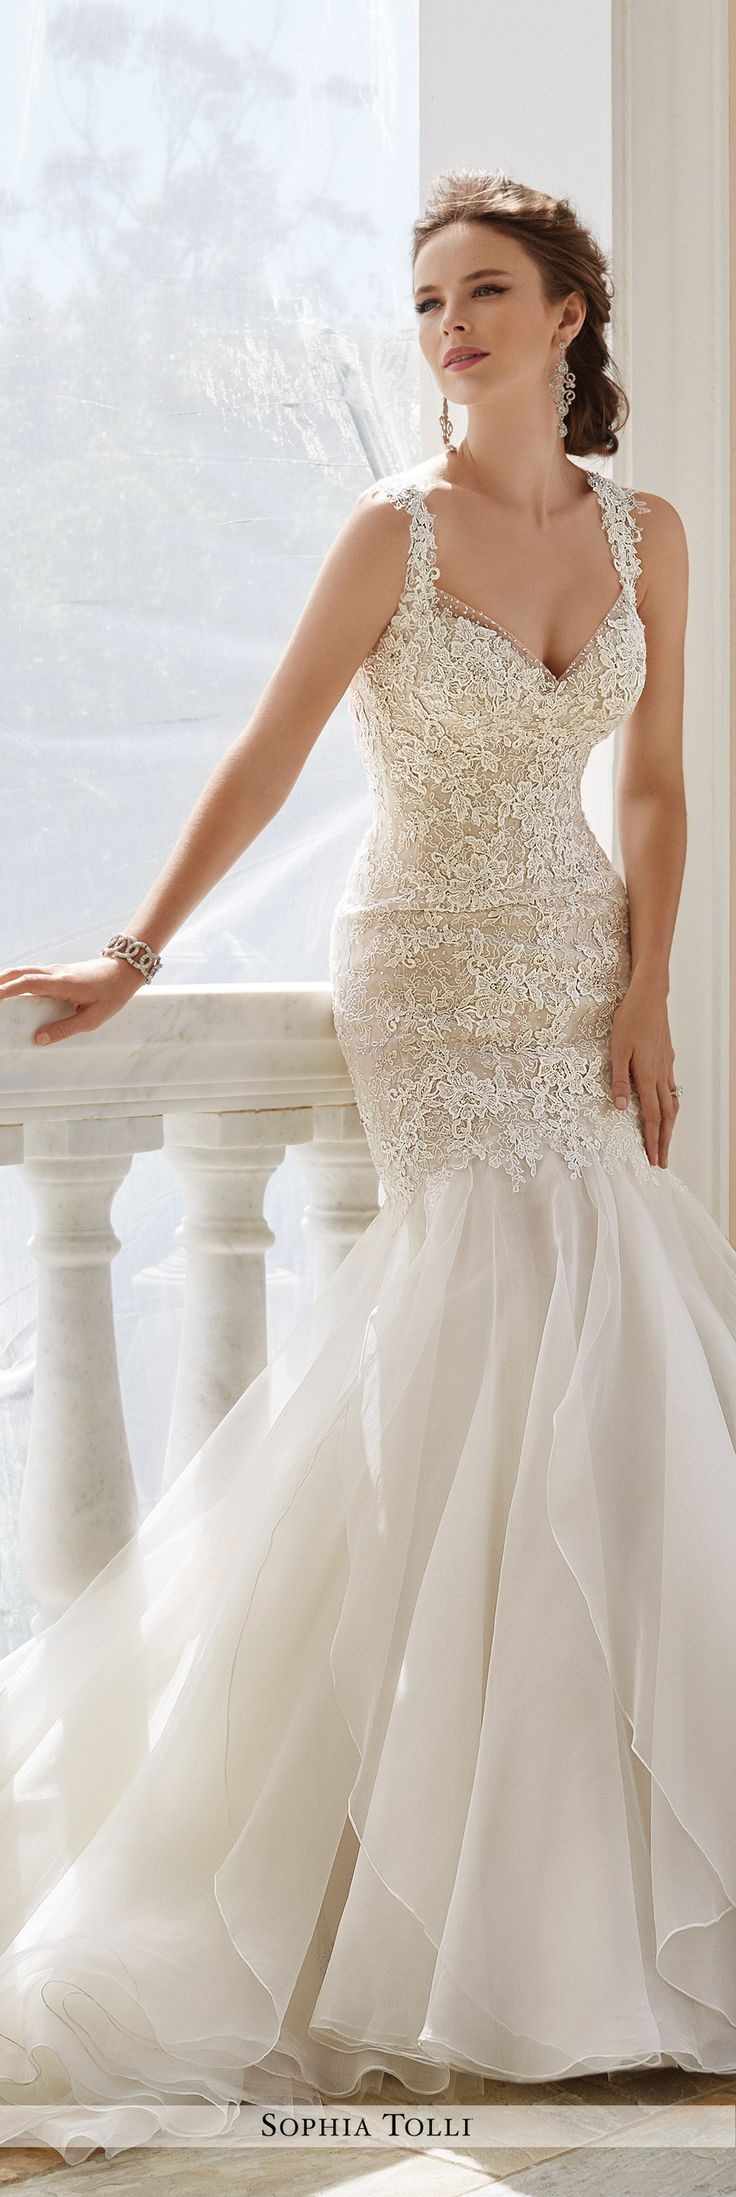 wedding dresses trumpet wedding dress Sophia Tolli Fall Wedding Gown Collection Style No Y Aprilia sleeveless lace